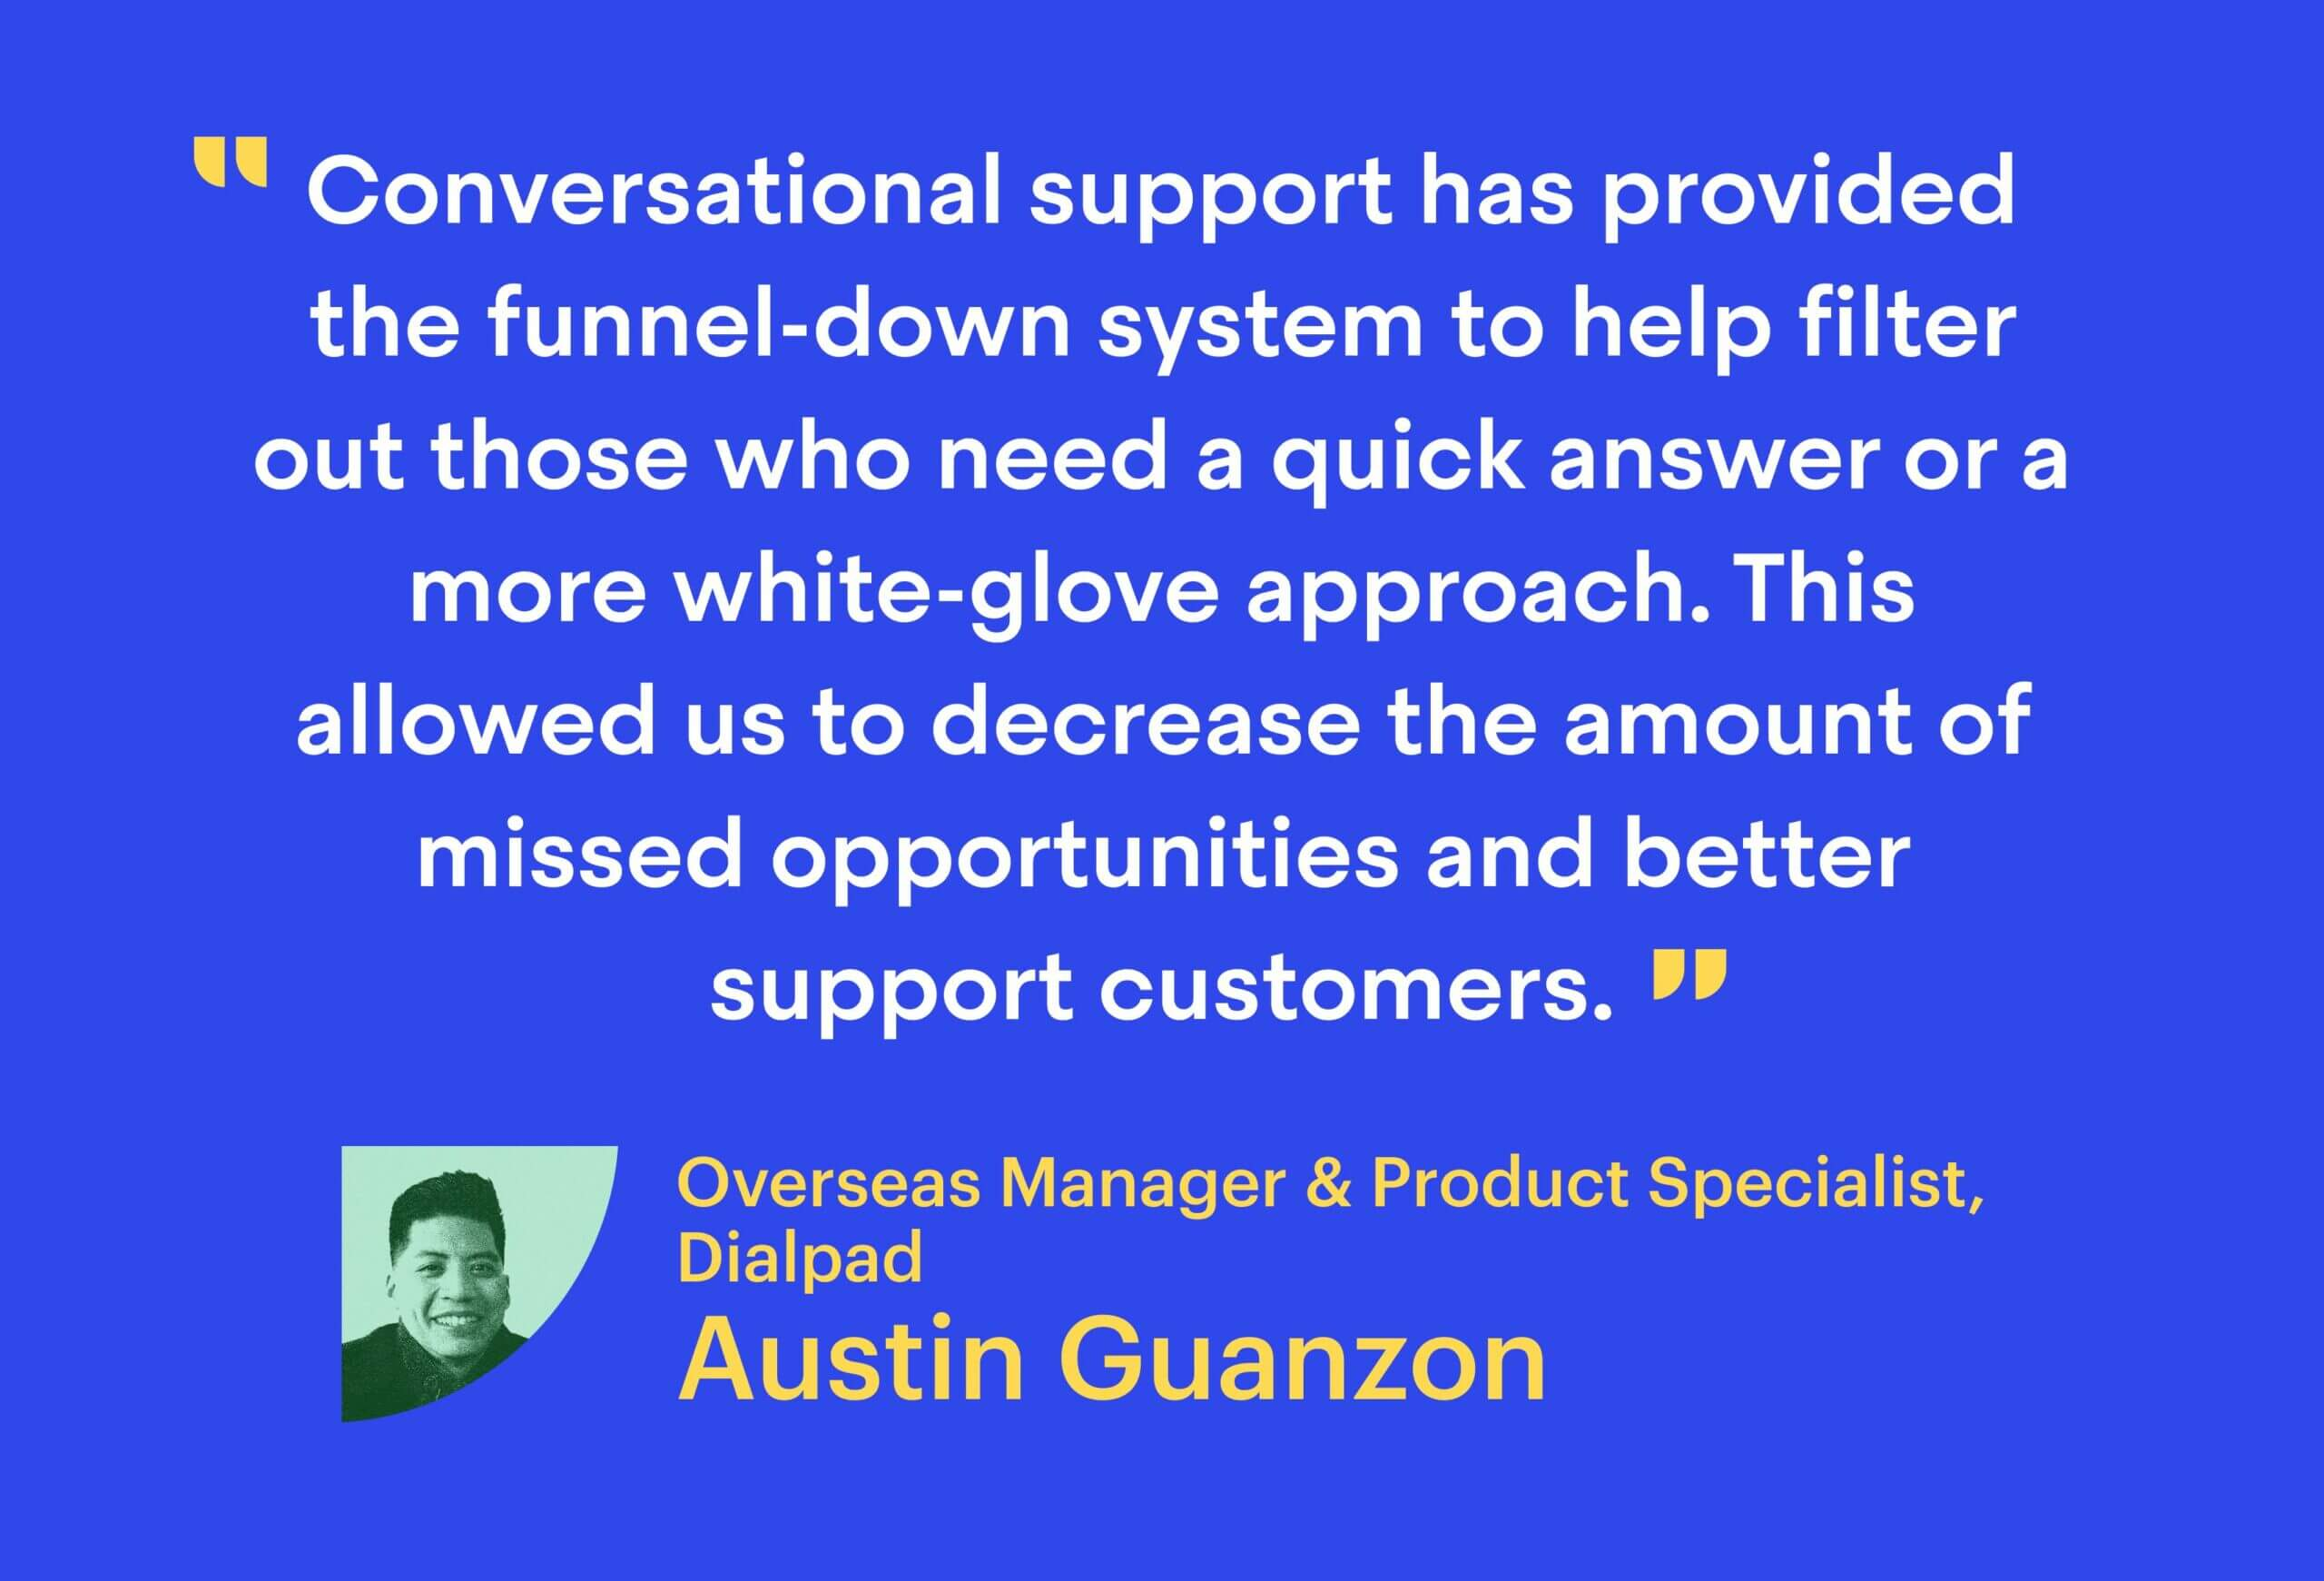 """""""Conversational support has provided the funnel-down system to help filter out those who need a quick answer or a more white-glove approach. This allowed us to decrease the amount of missed opportunities and better support customers."""""""